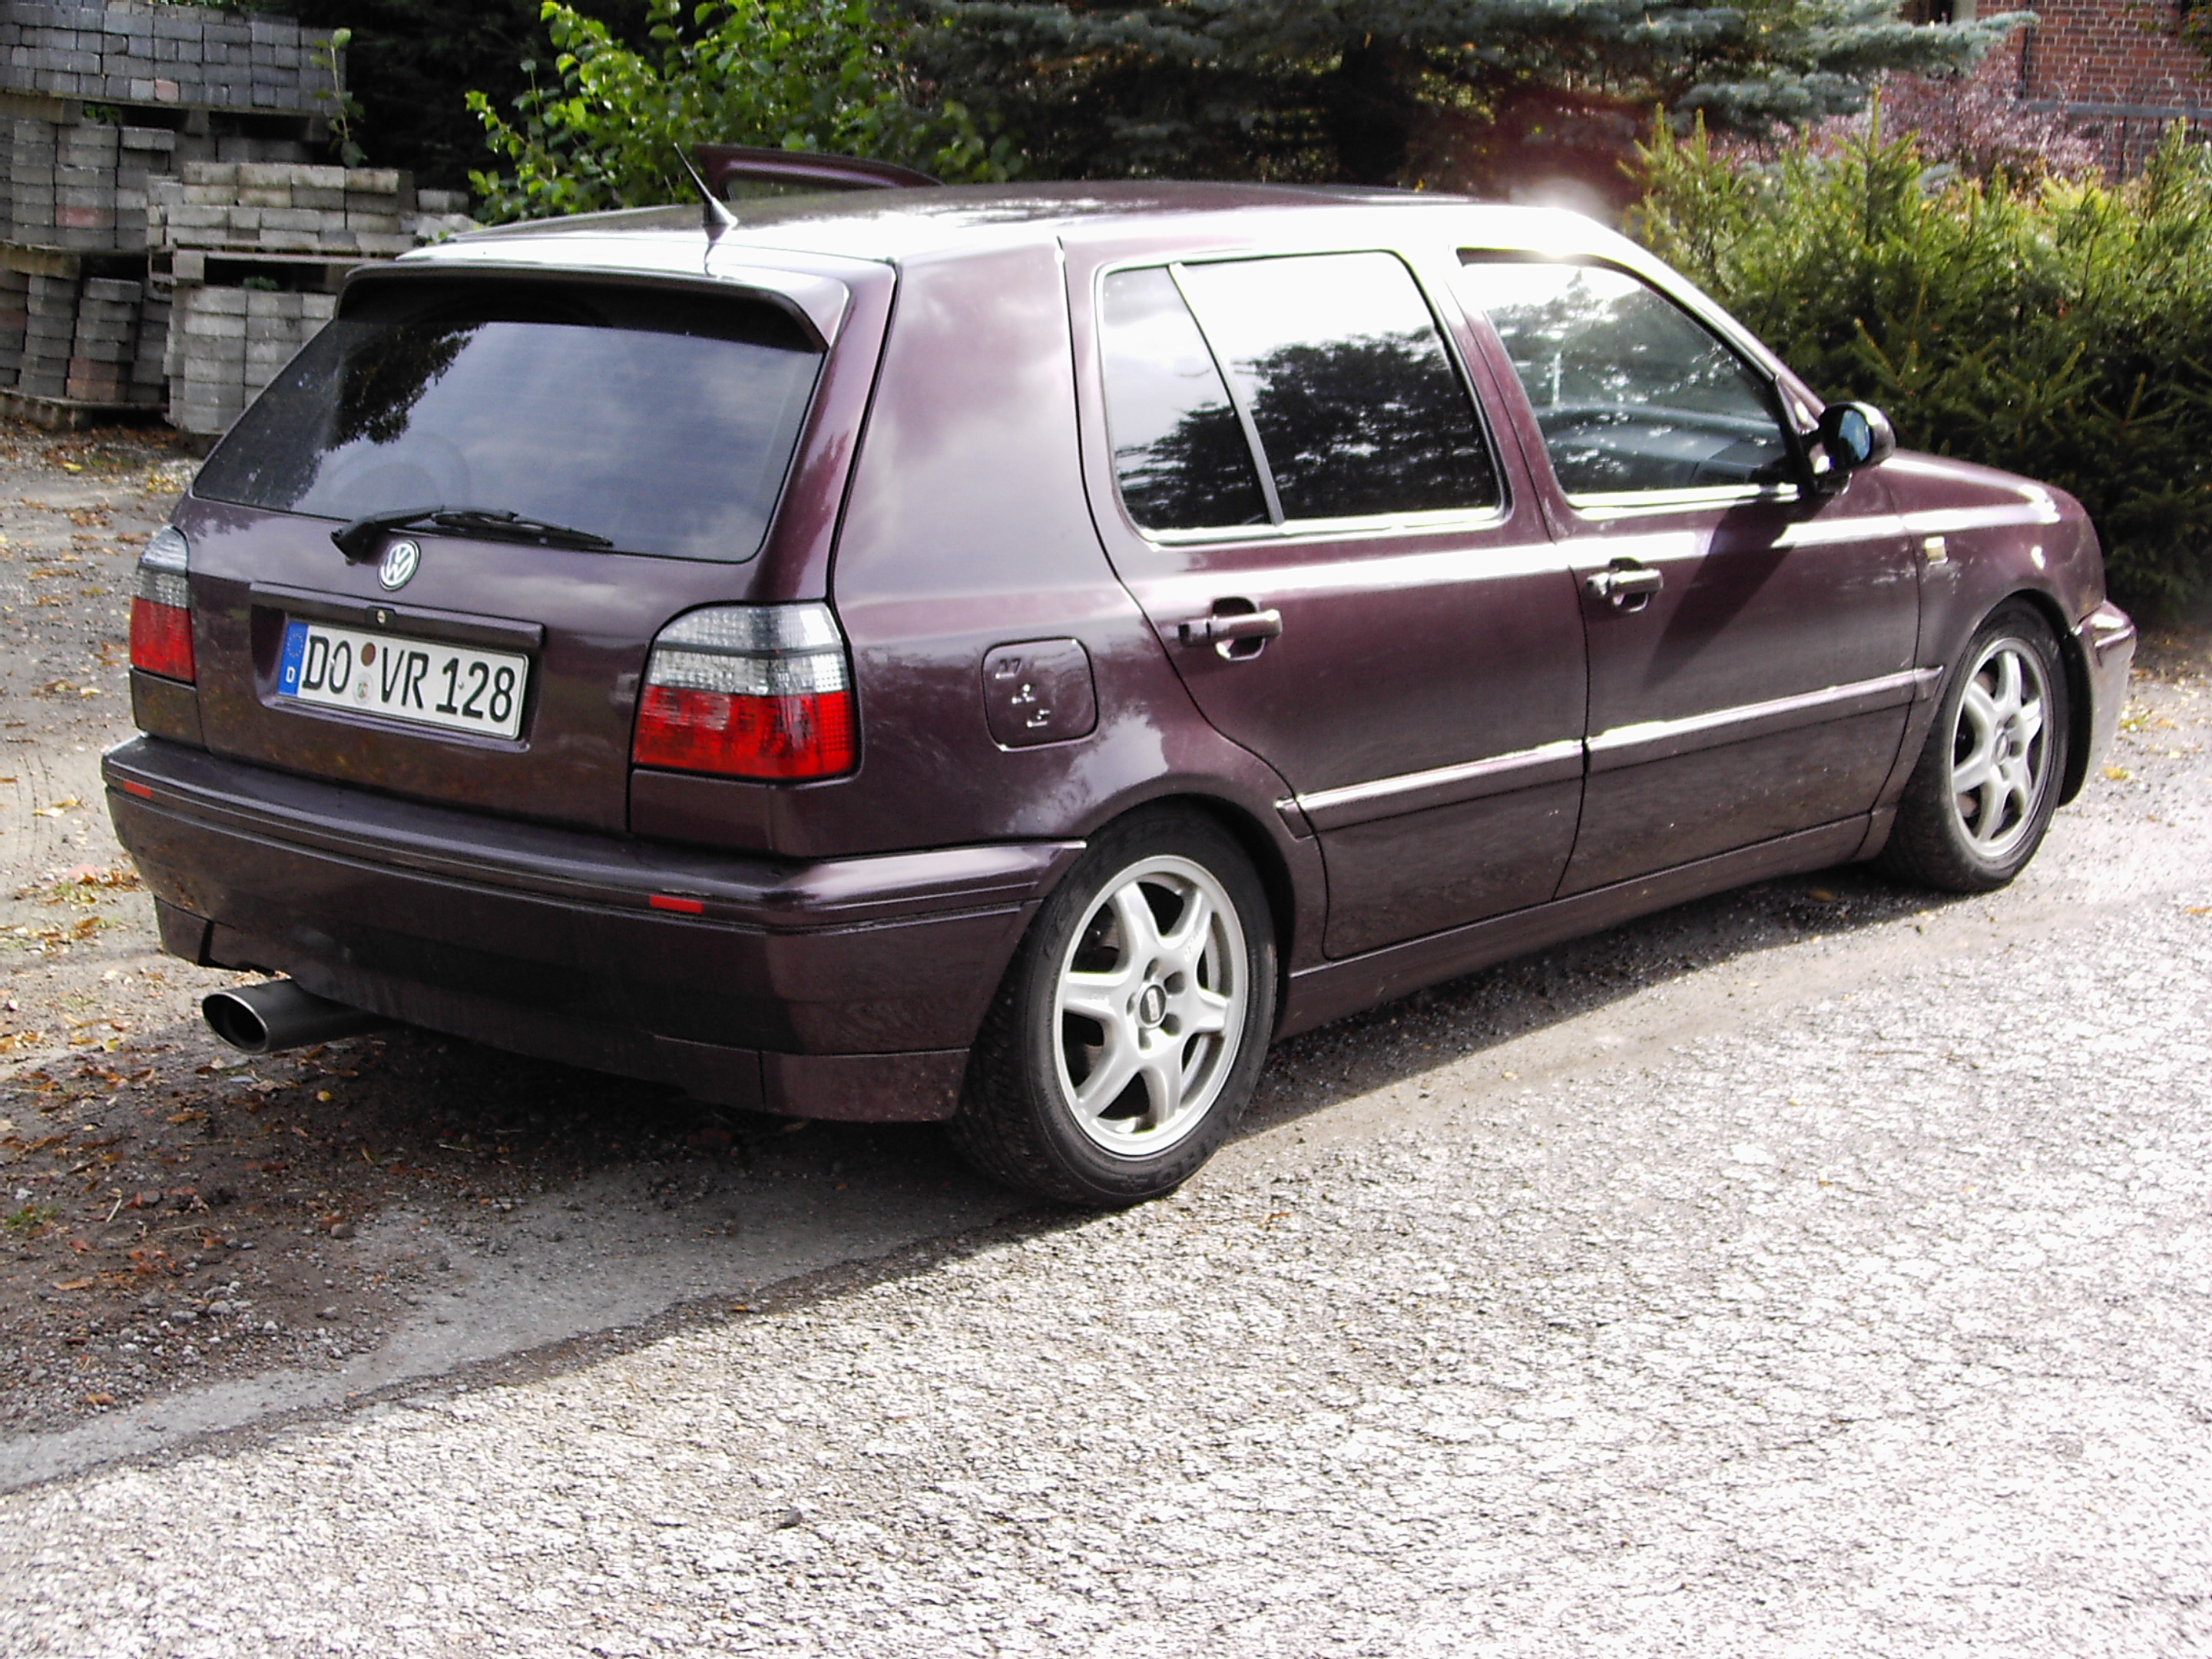 Re golf 3 vr6 gestohlen worden in dortmund seite 1 for Interieur golf 3 vr6